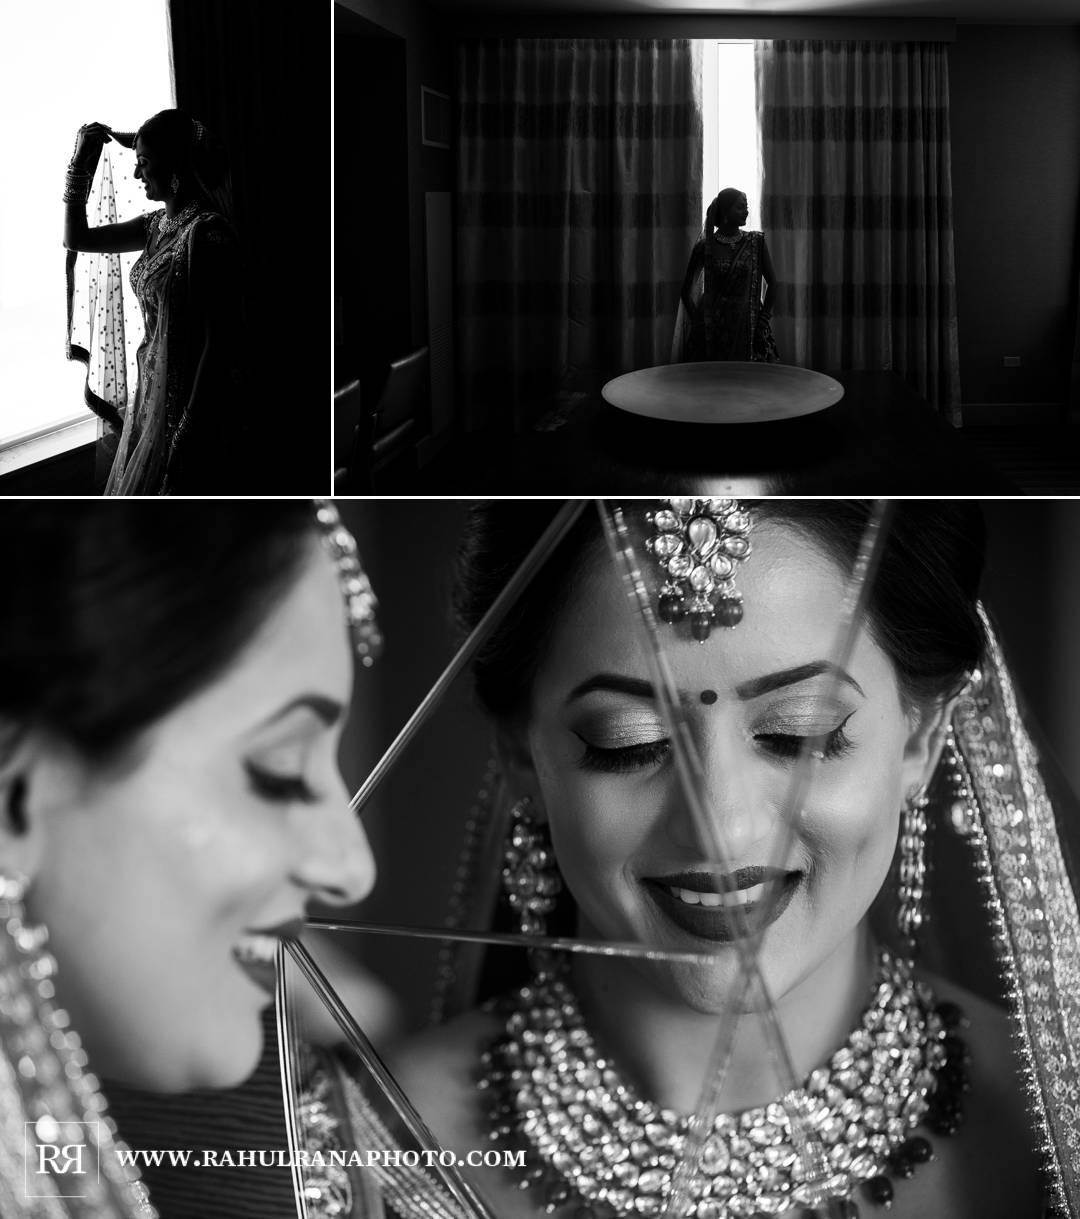 Westin North Shore - Illinois Indian Wedding - Bride Portraits Mirror - Rahul Rana Photo